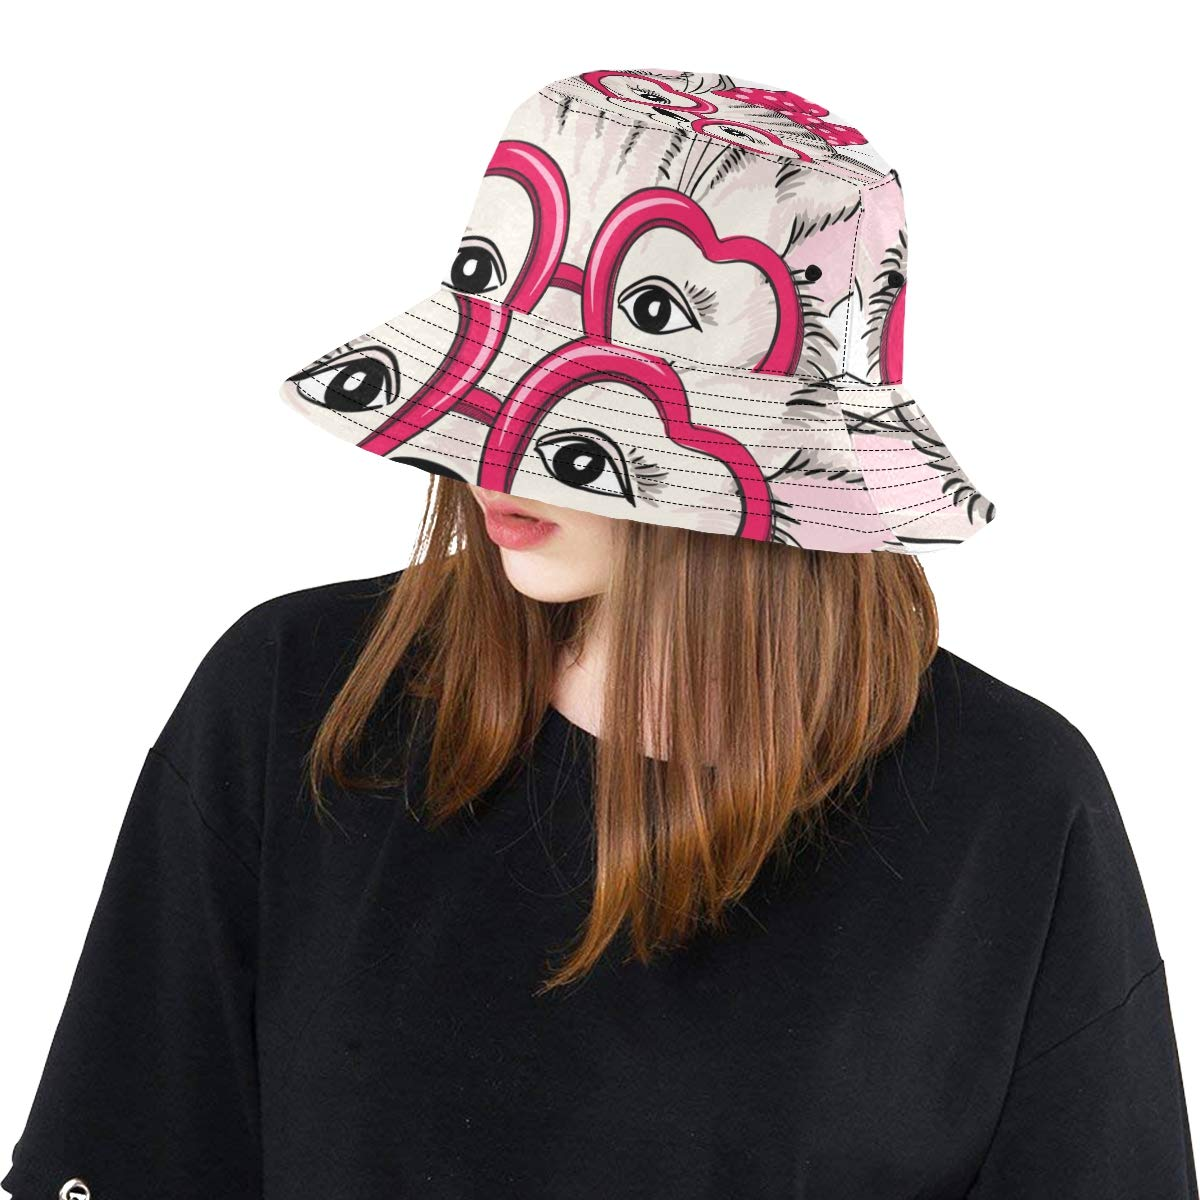 Cartoon Bow Cat Animal Summer Unisex Fishing Sun Top Bucket Hats for Kid Teens Women and Men with Packable Fisherman Cap for Outdoor Baseball Sport Picnic